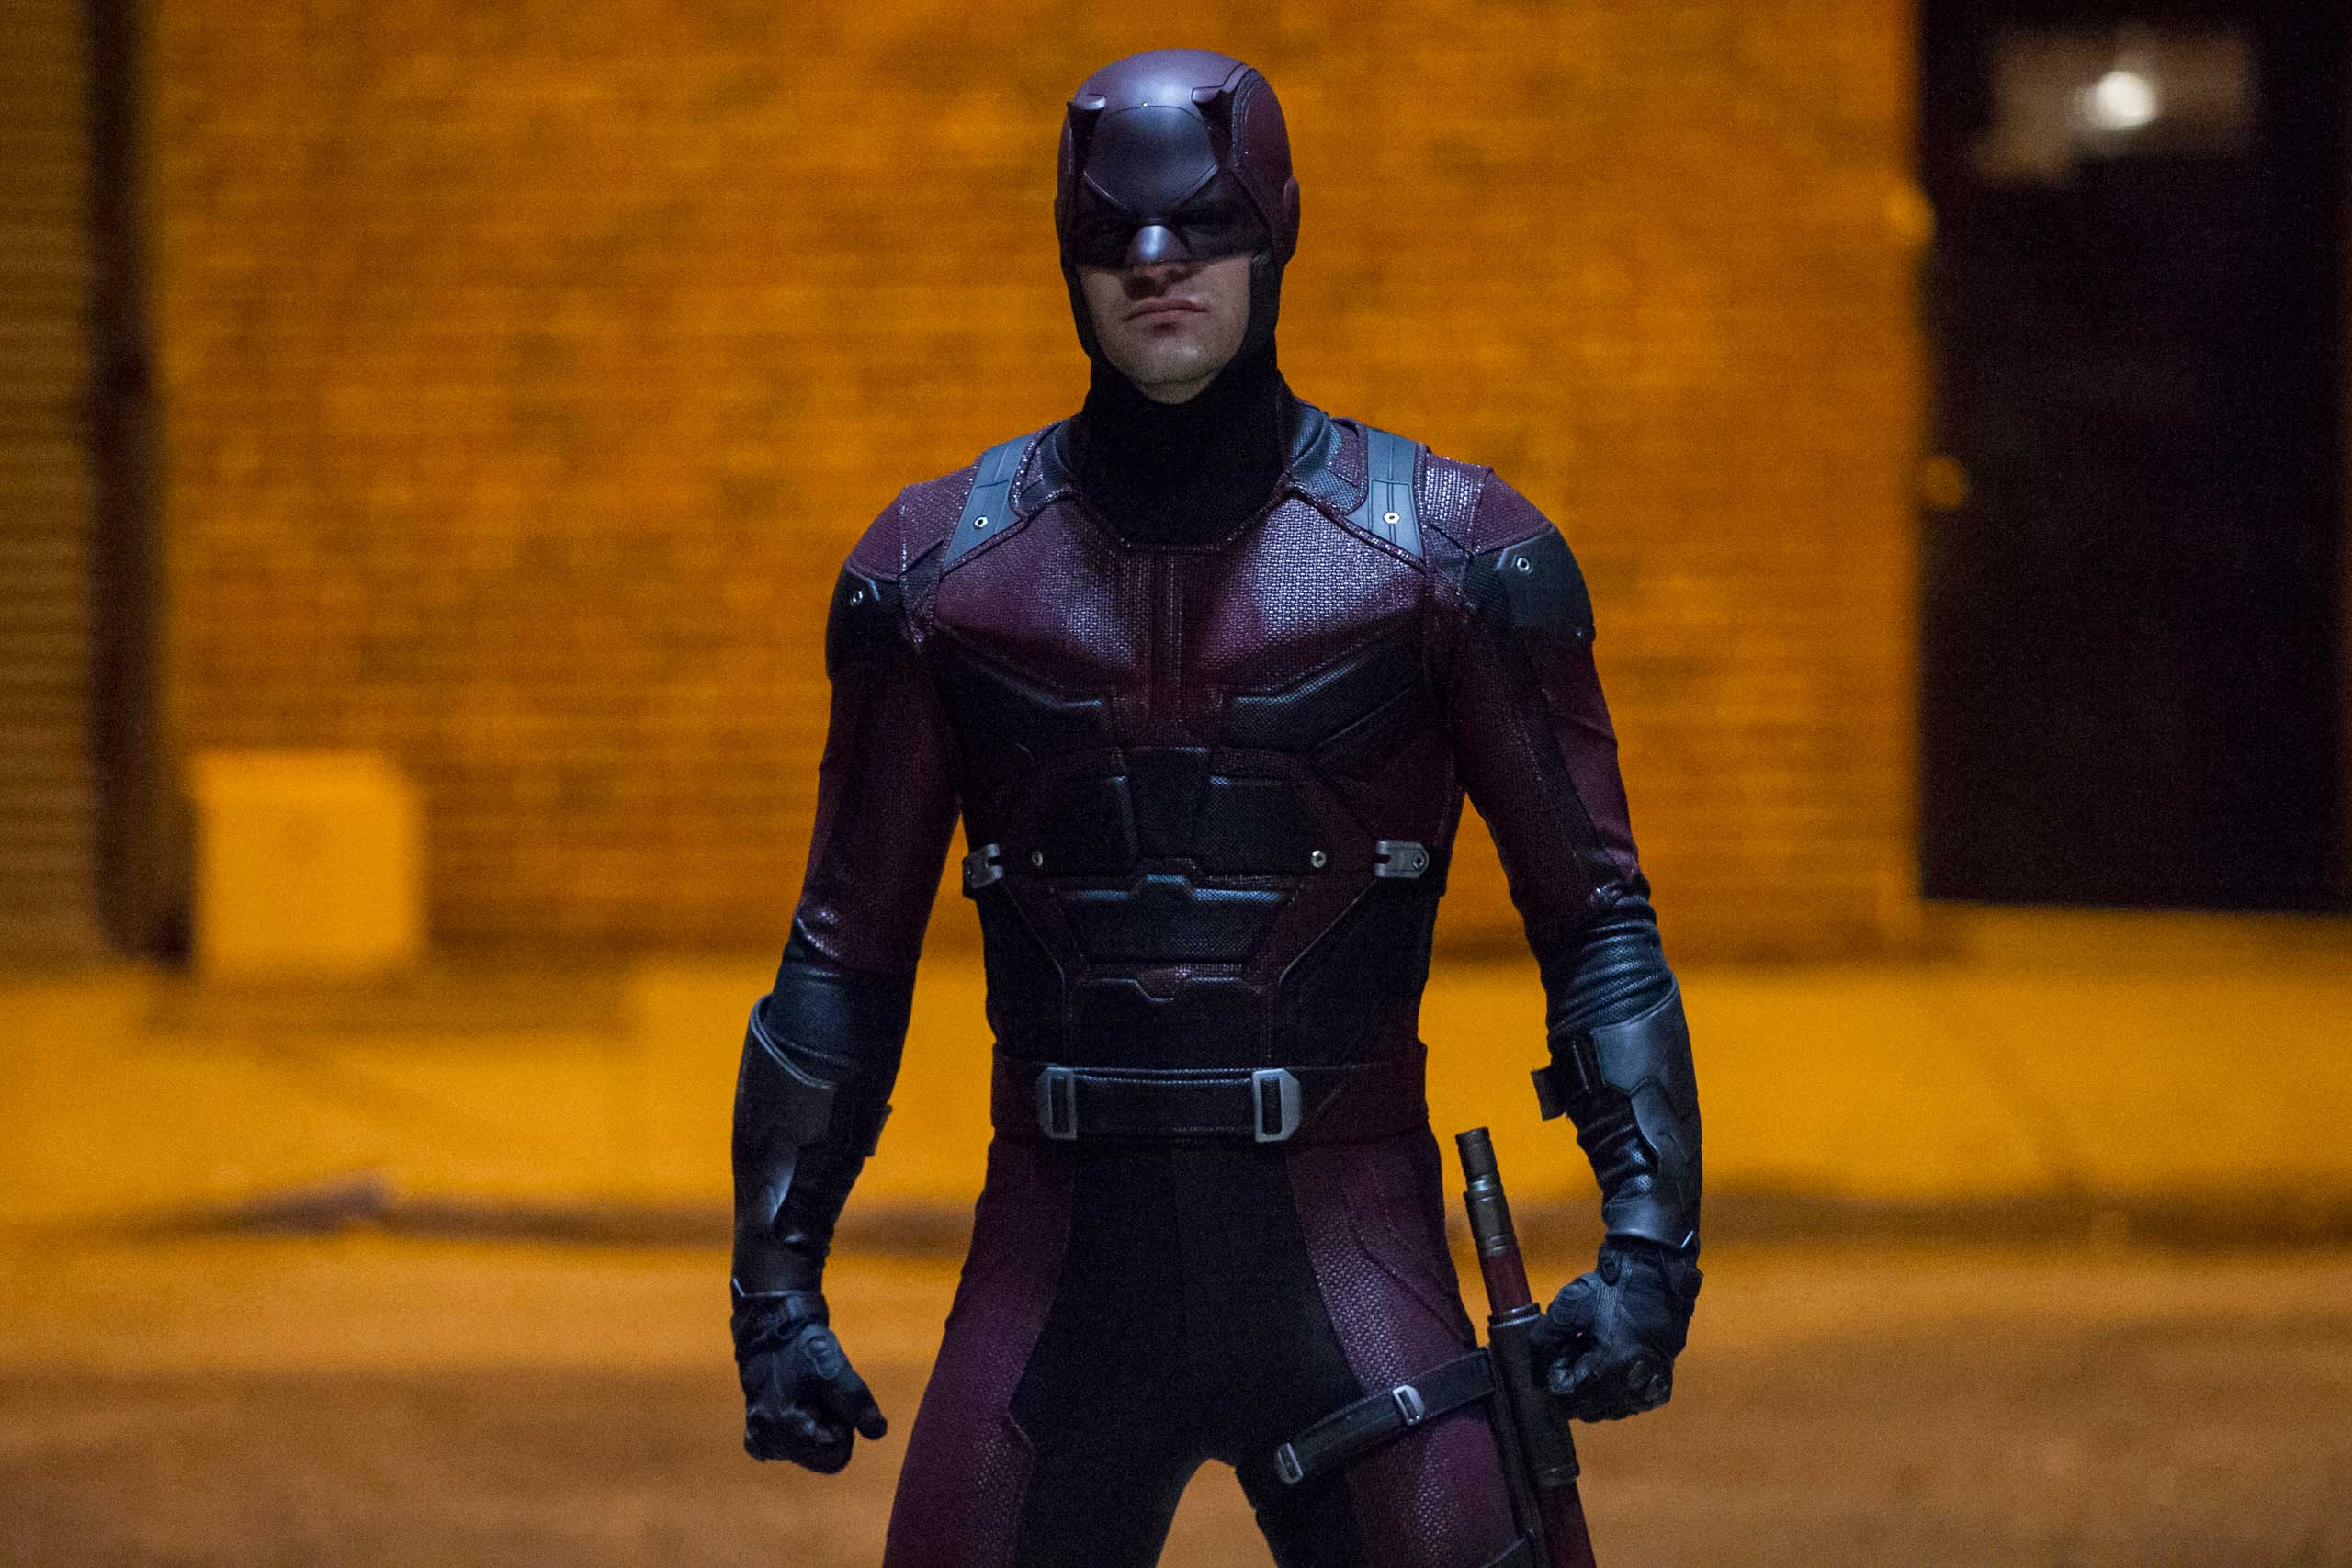 Daredevil's TV Costume